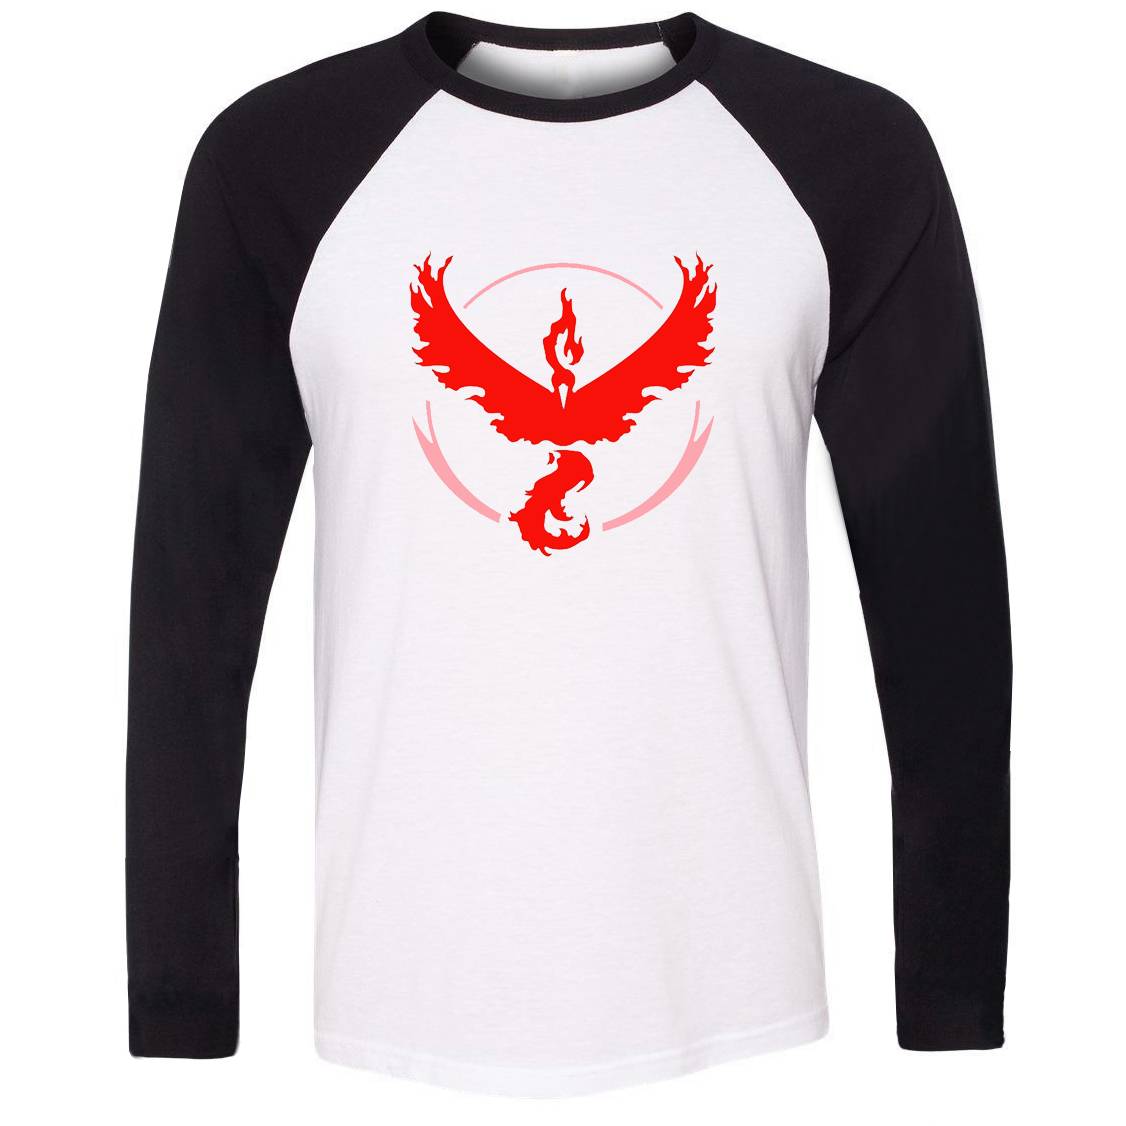 iDzn New Hot Unisex T-shirt Pokemon Go Game Fans Moltres Team Red Team Pattern Raglan Long Sleeve Men T shirt Boy Print Tee Tops